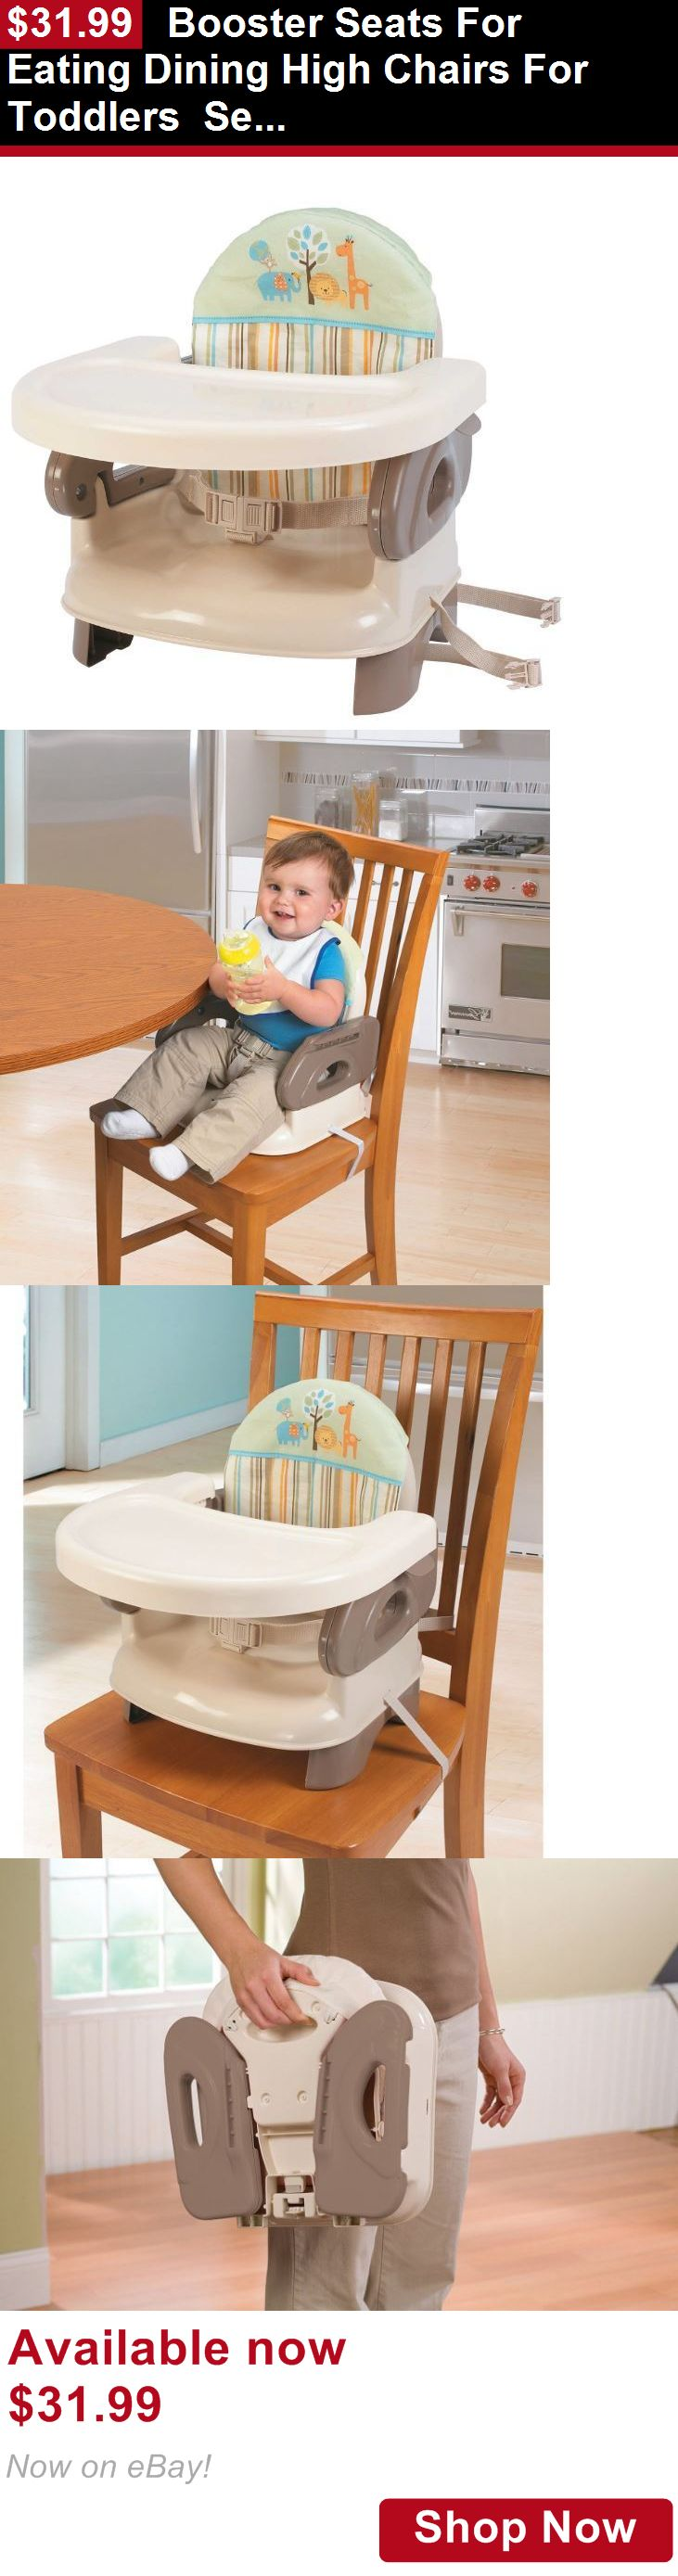 Booster Chairs: Booster Seats For Eating Dining High Chairs For Toddlers Seat Folding Infant BUY IT NOW ONLY: $31.99